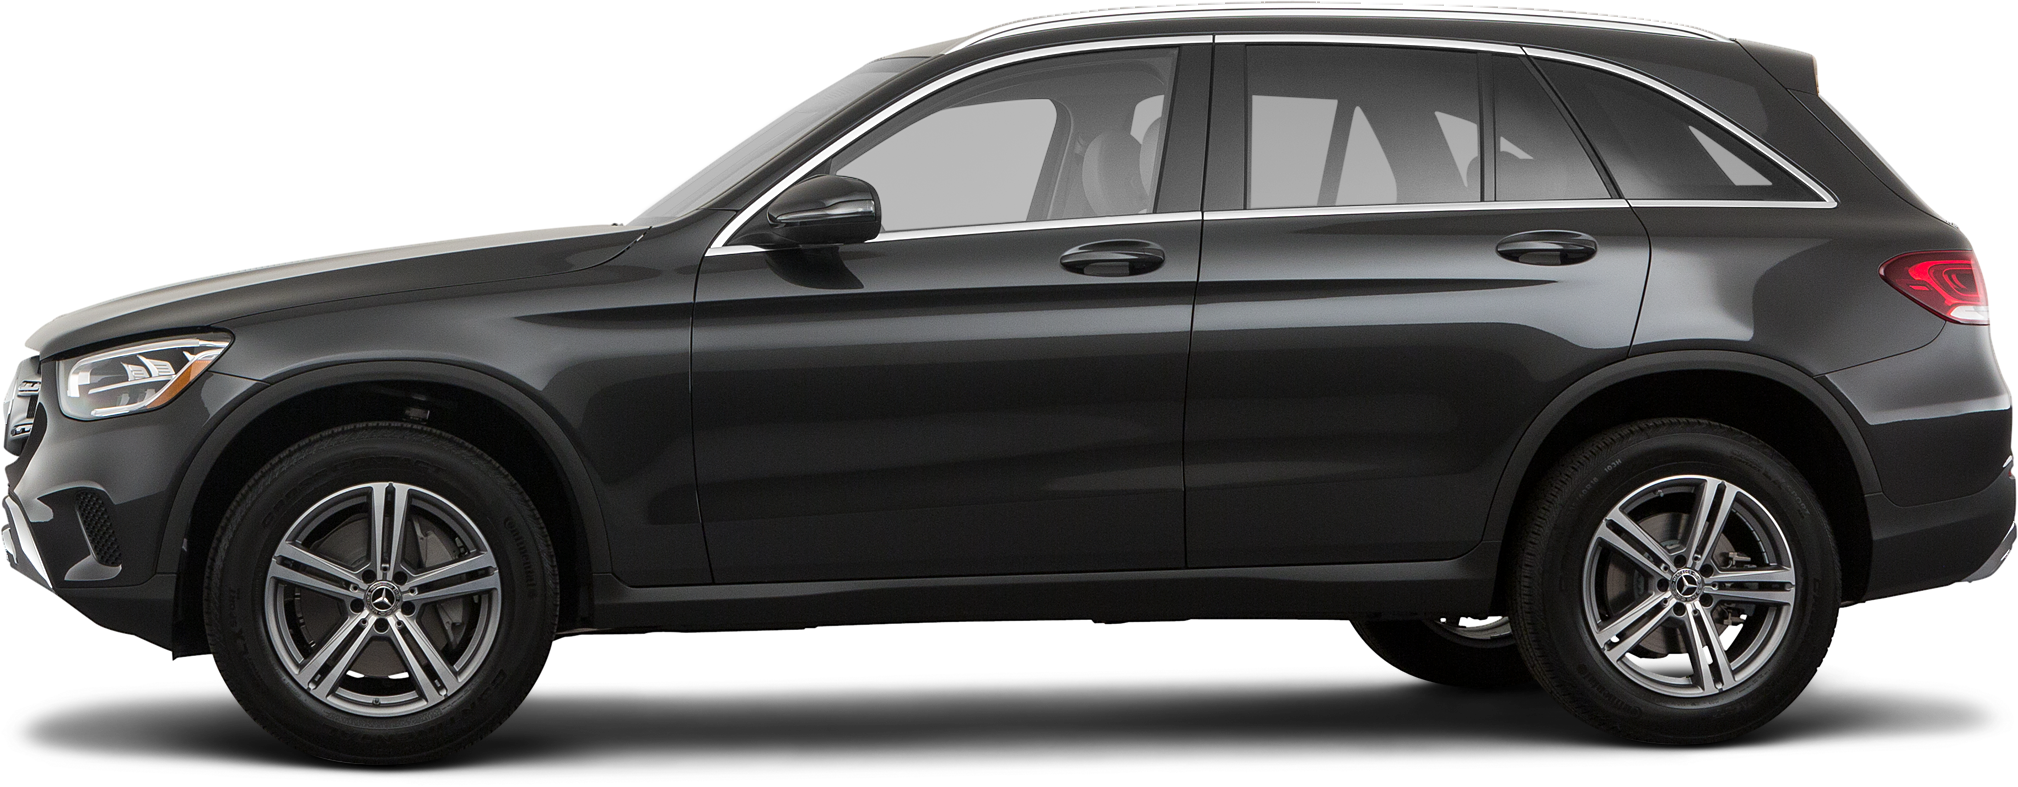 2020 Mercedes-Benz GLC 300 SUV 4MATIC